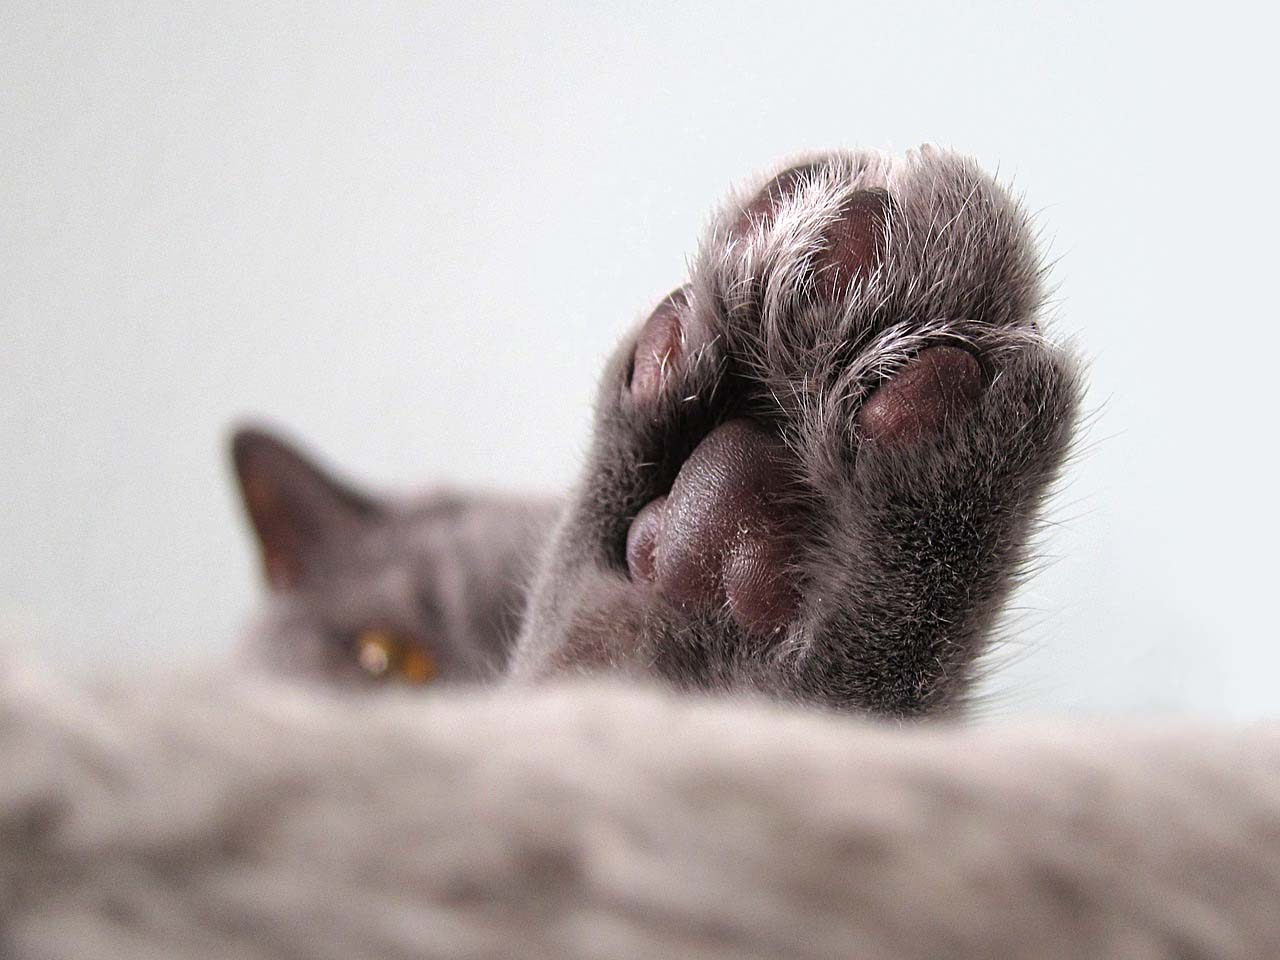 Cats sweat through their paws, cat, fact, facts, animal, life, survival